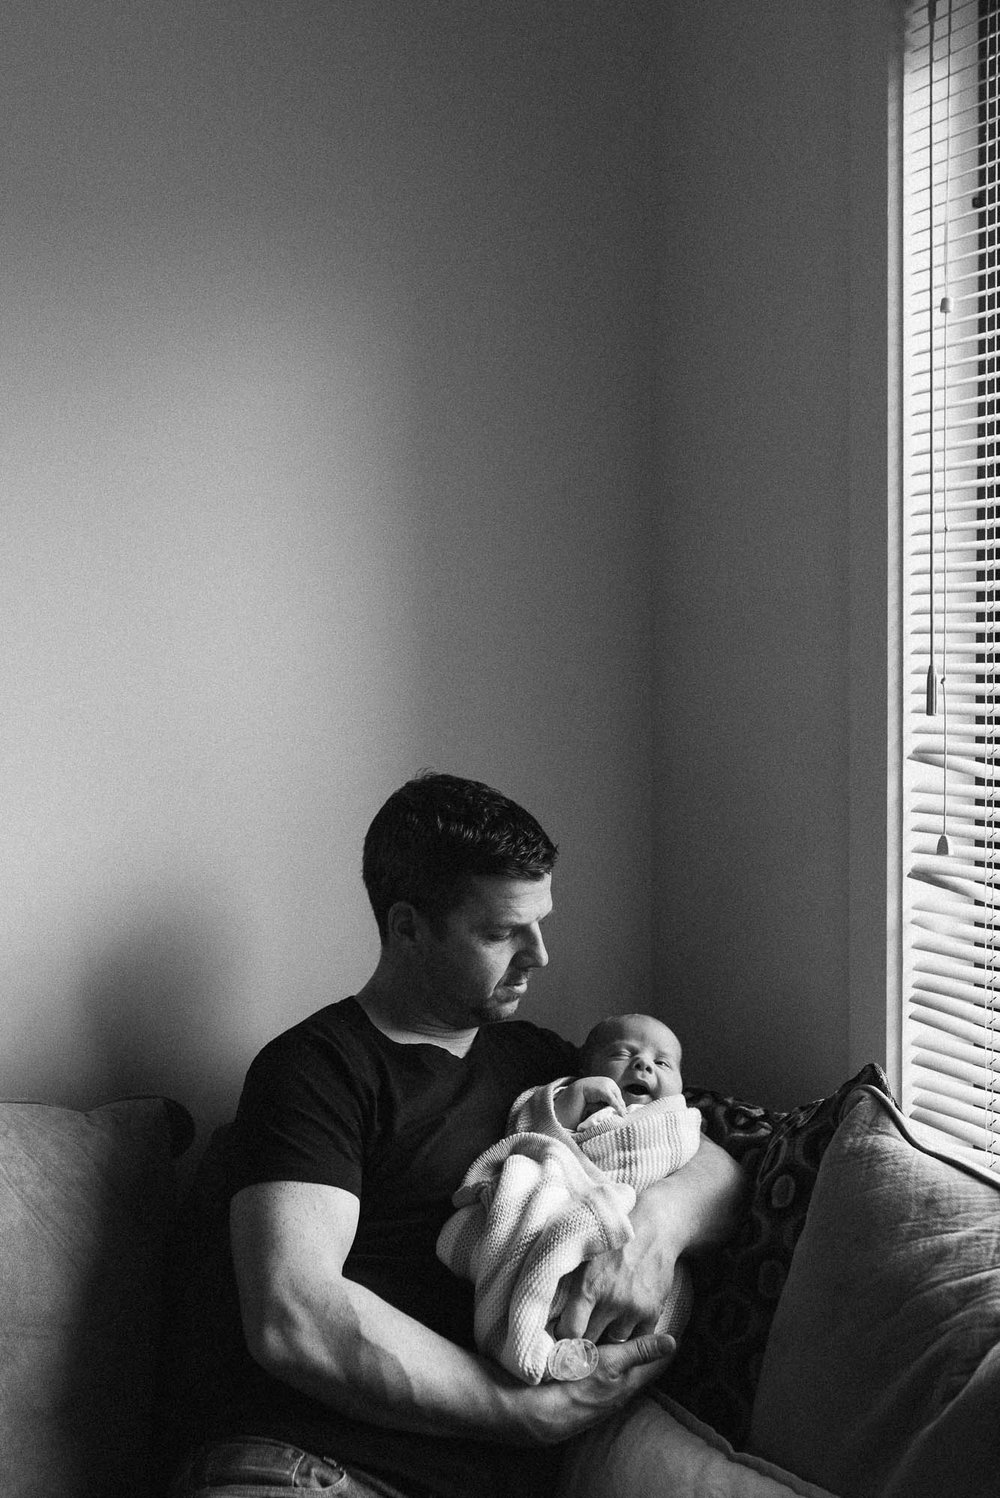 dad holding his newborn baby at an in-home newborn photo session